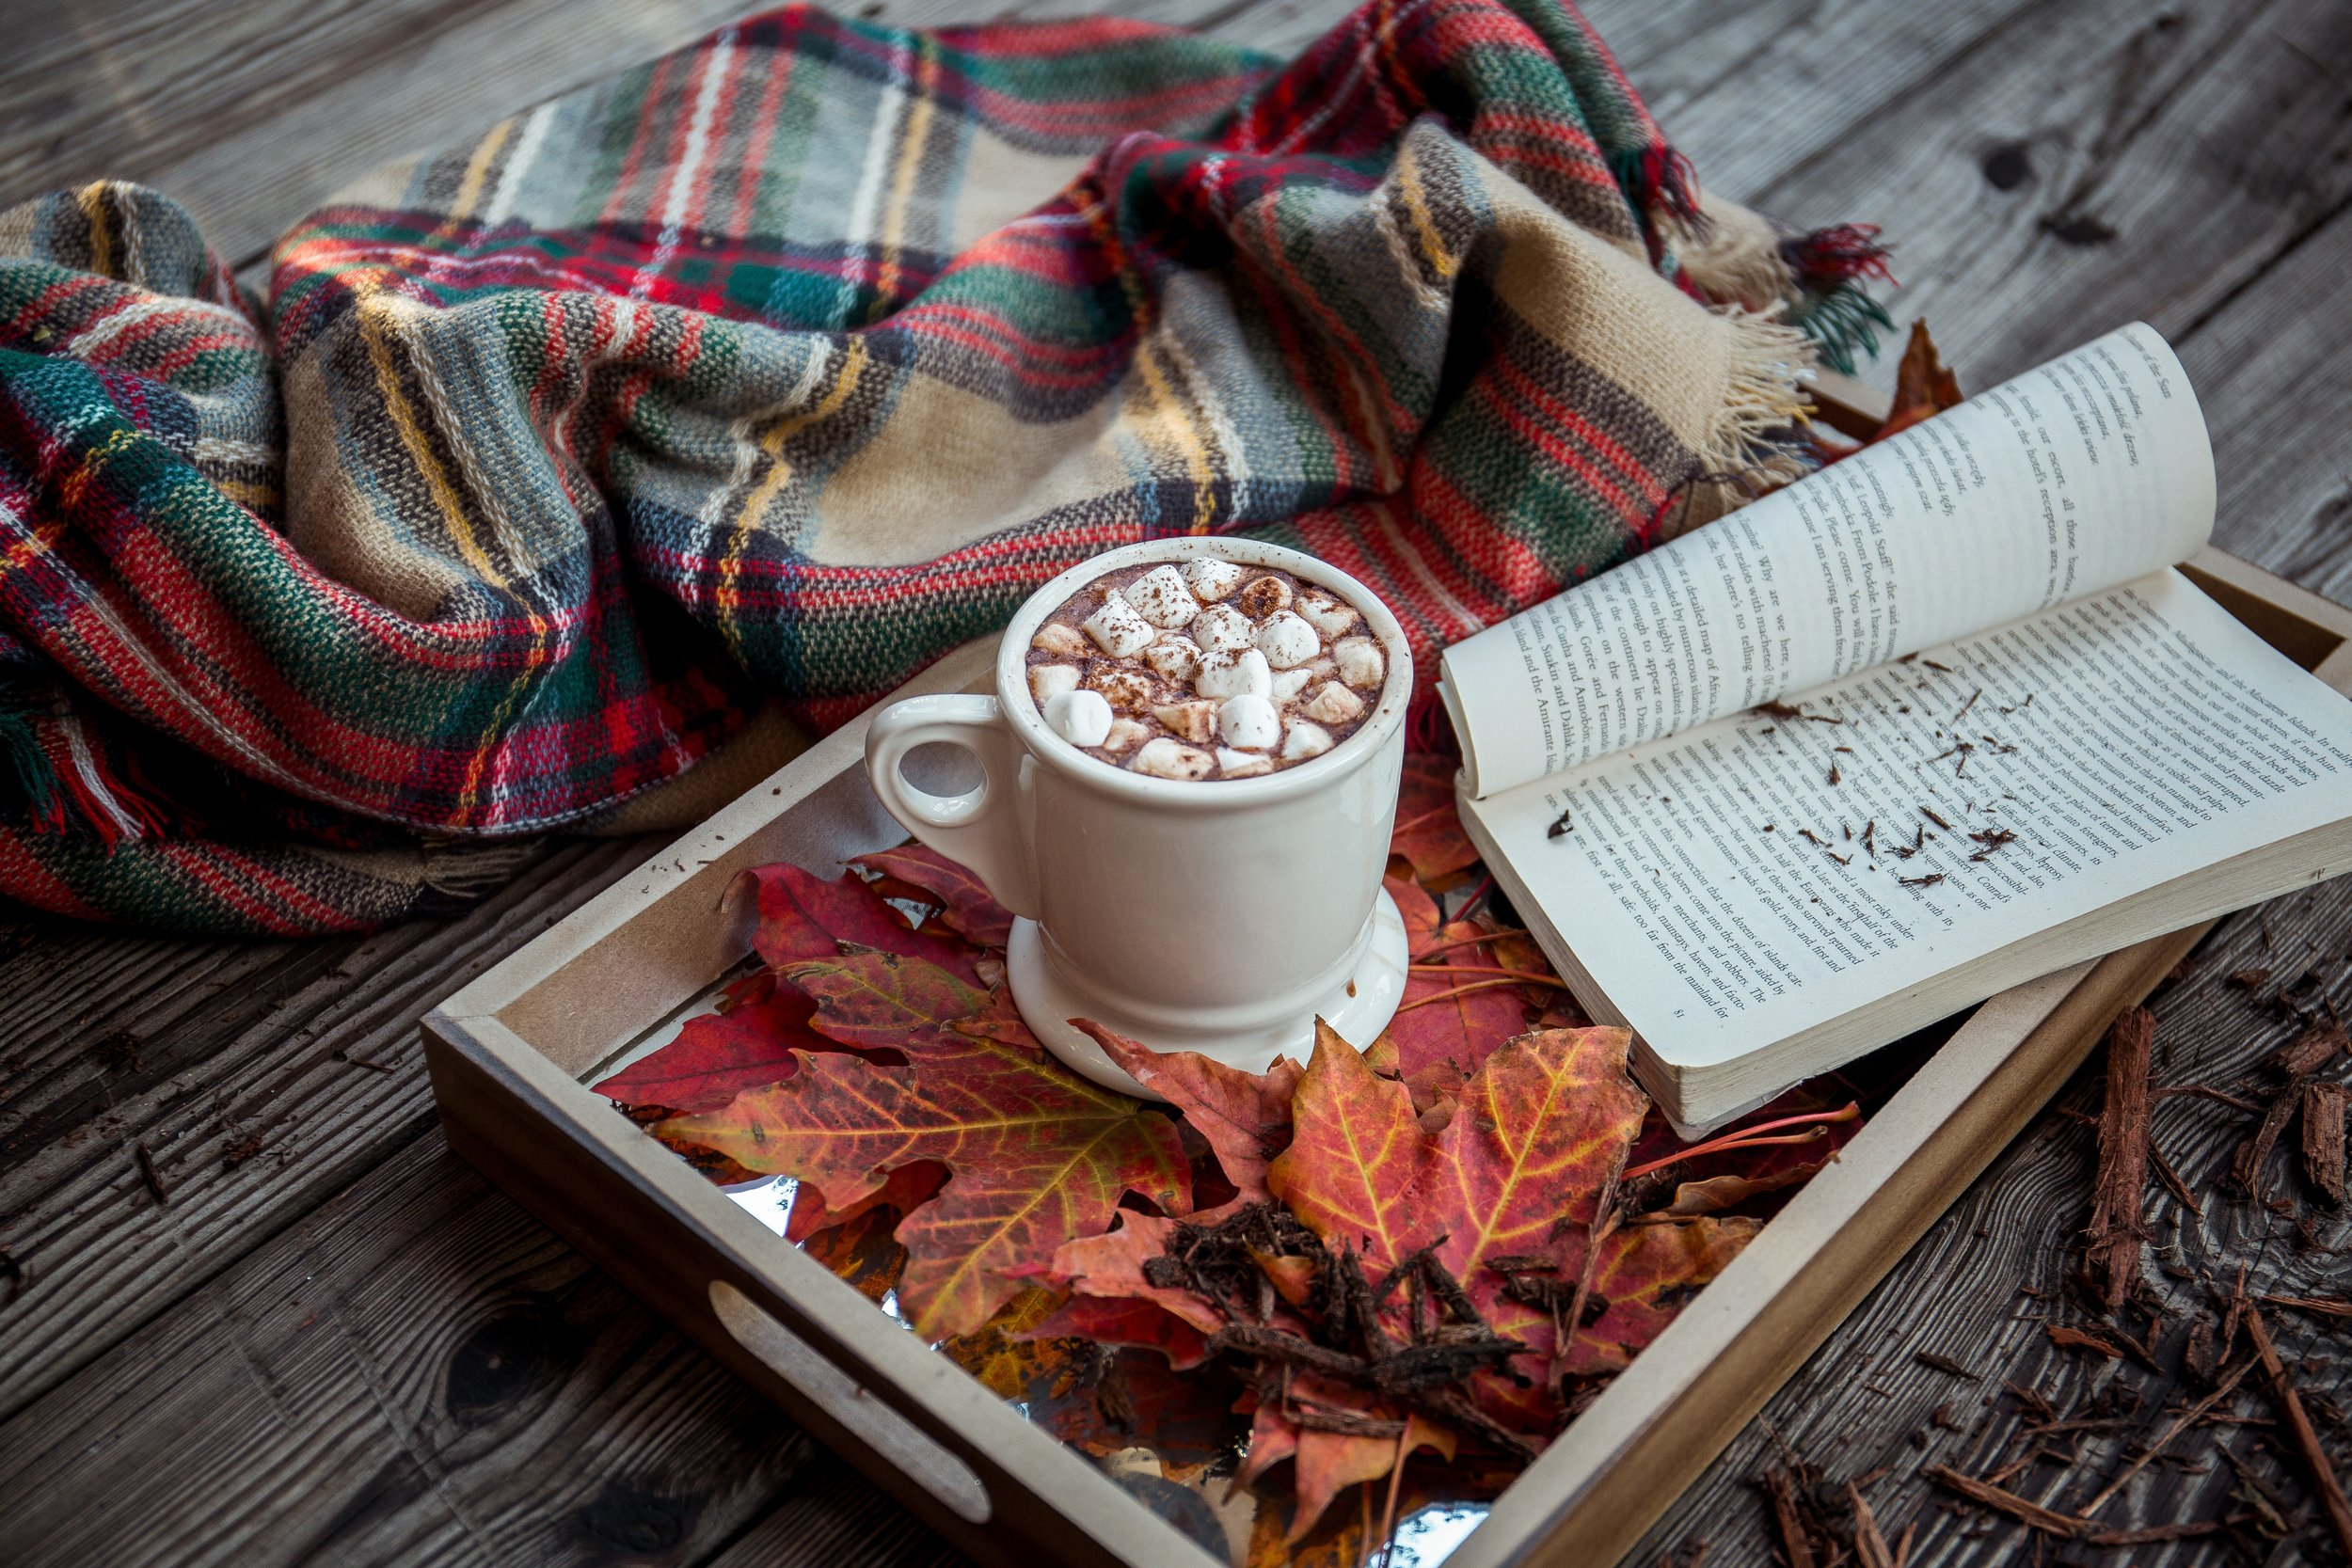 A hot chocolate outside with a blanket and book